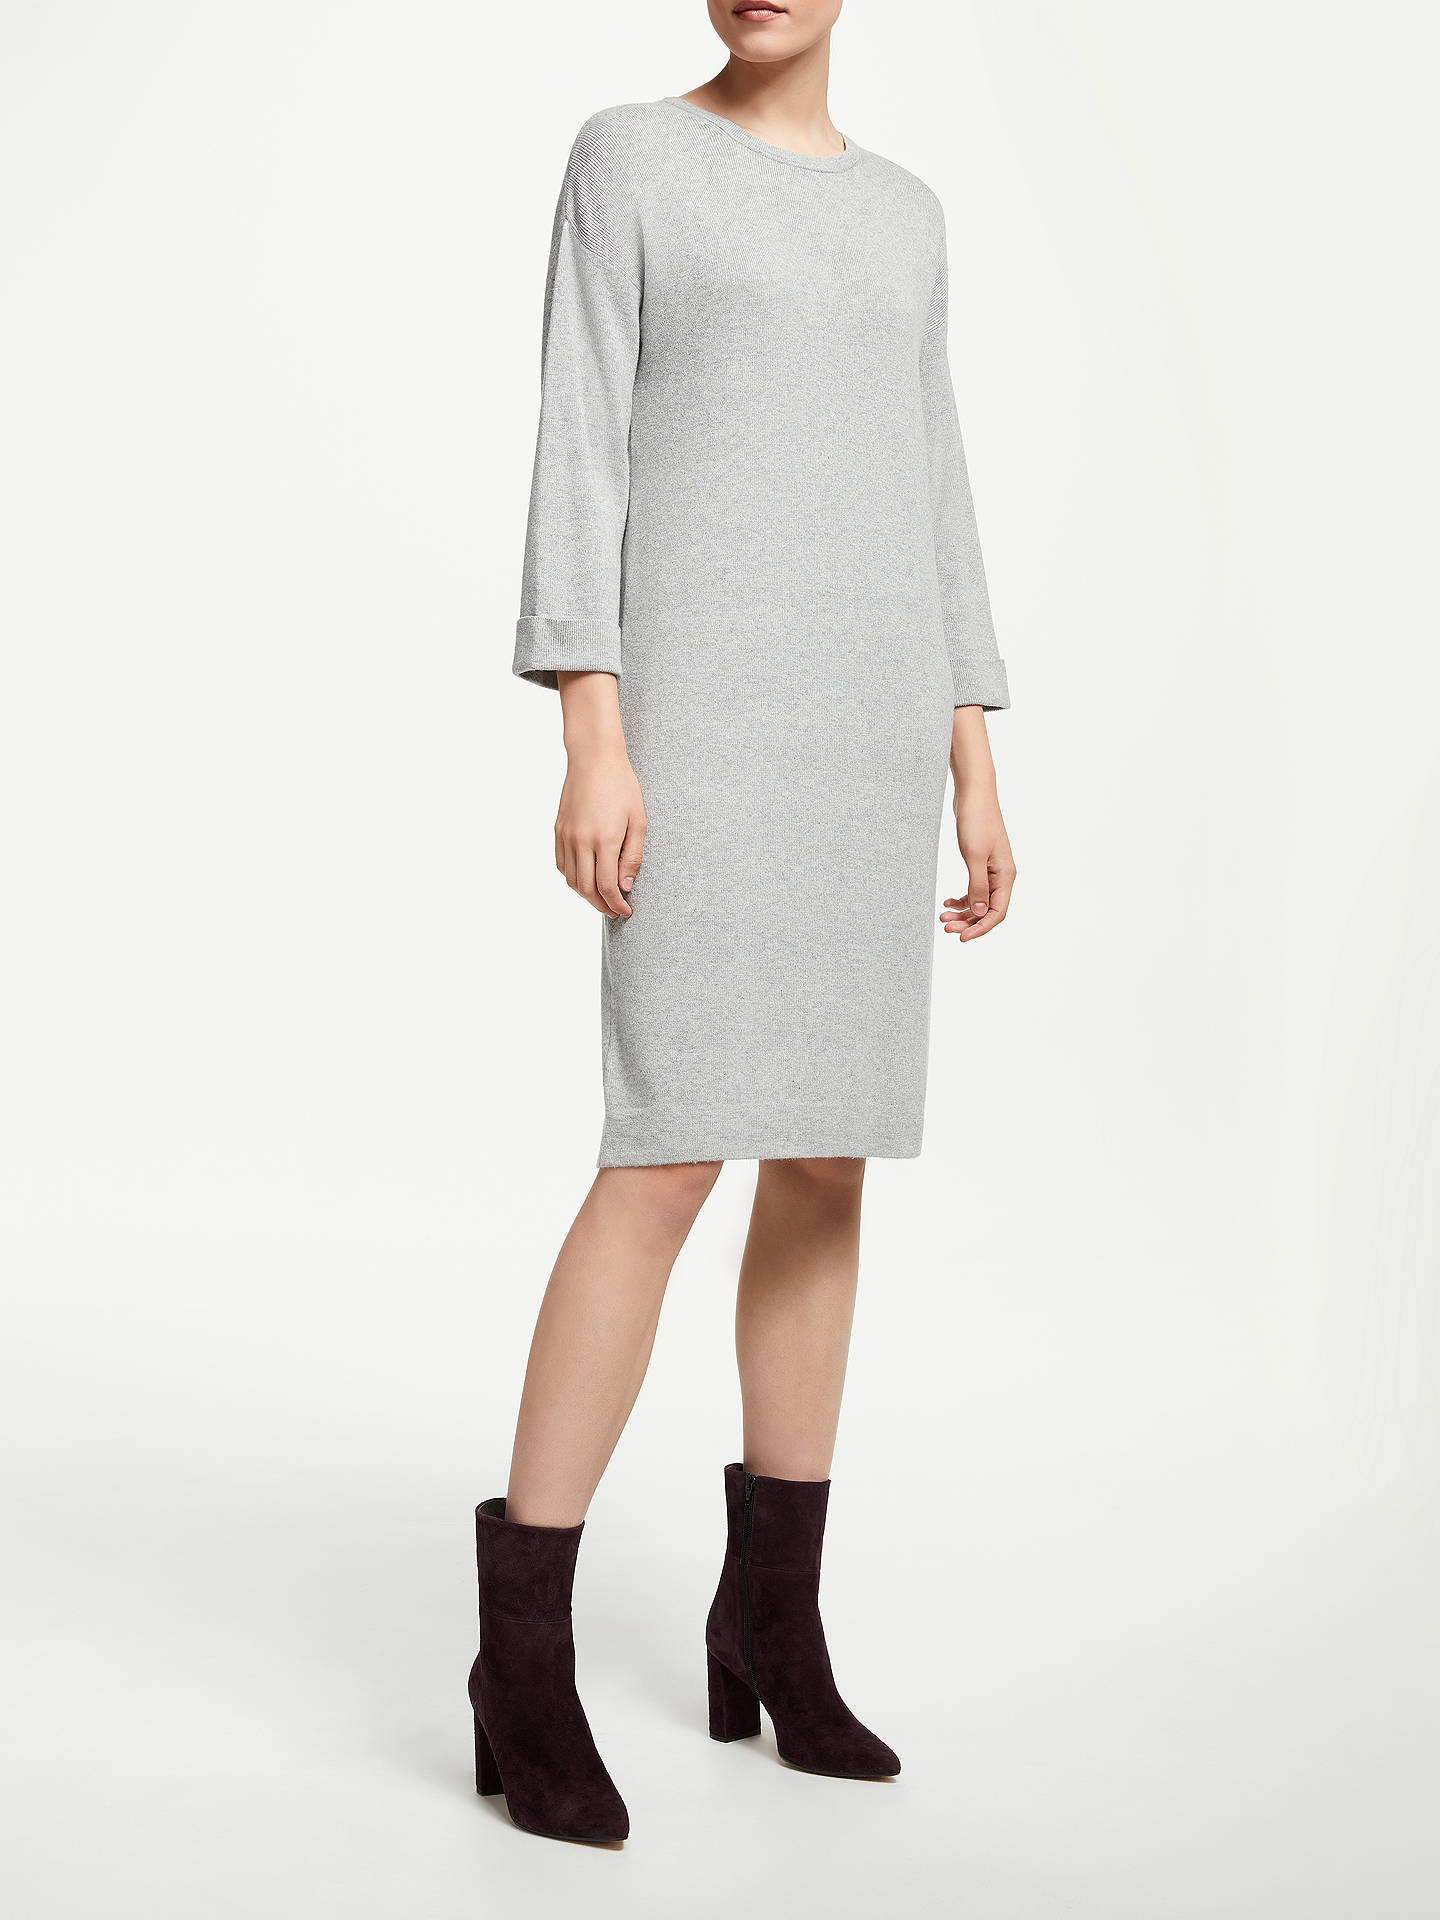 BuyJohn Lewis & Partners Drop Sleeve Knitted Dress, Light Grey, 8 Online at johnlewis.com